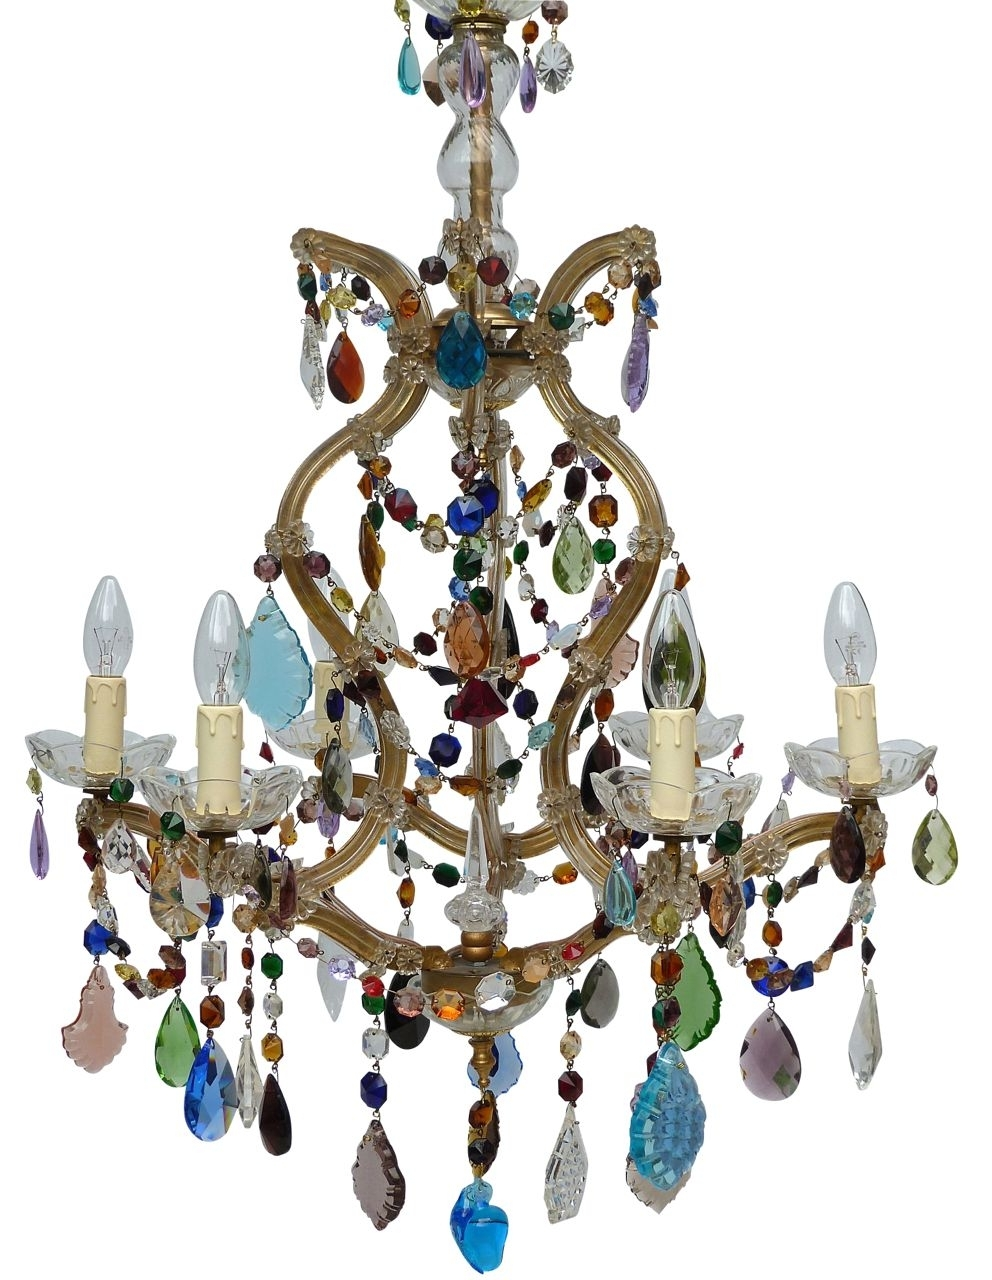 Well Liked The Vintage Chandelier Companymulti Coloured Archives – Page 3 Of 3 In Coloured Chandeliers (View 4 of 15)